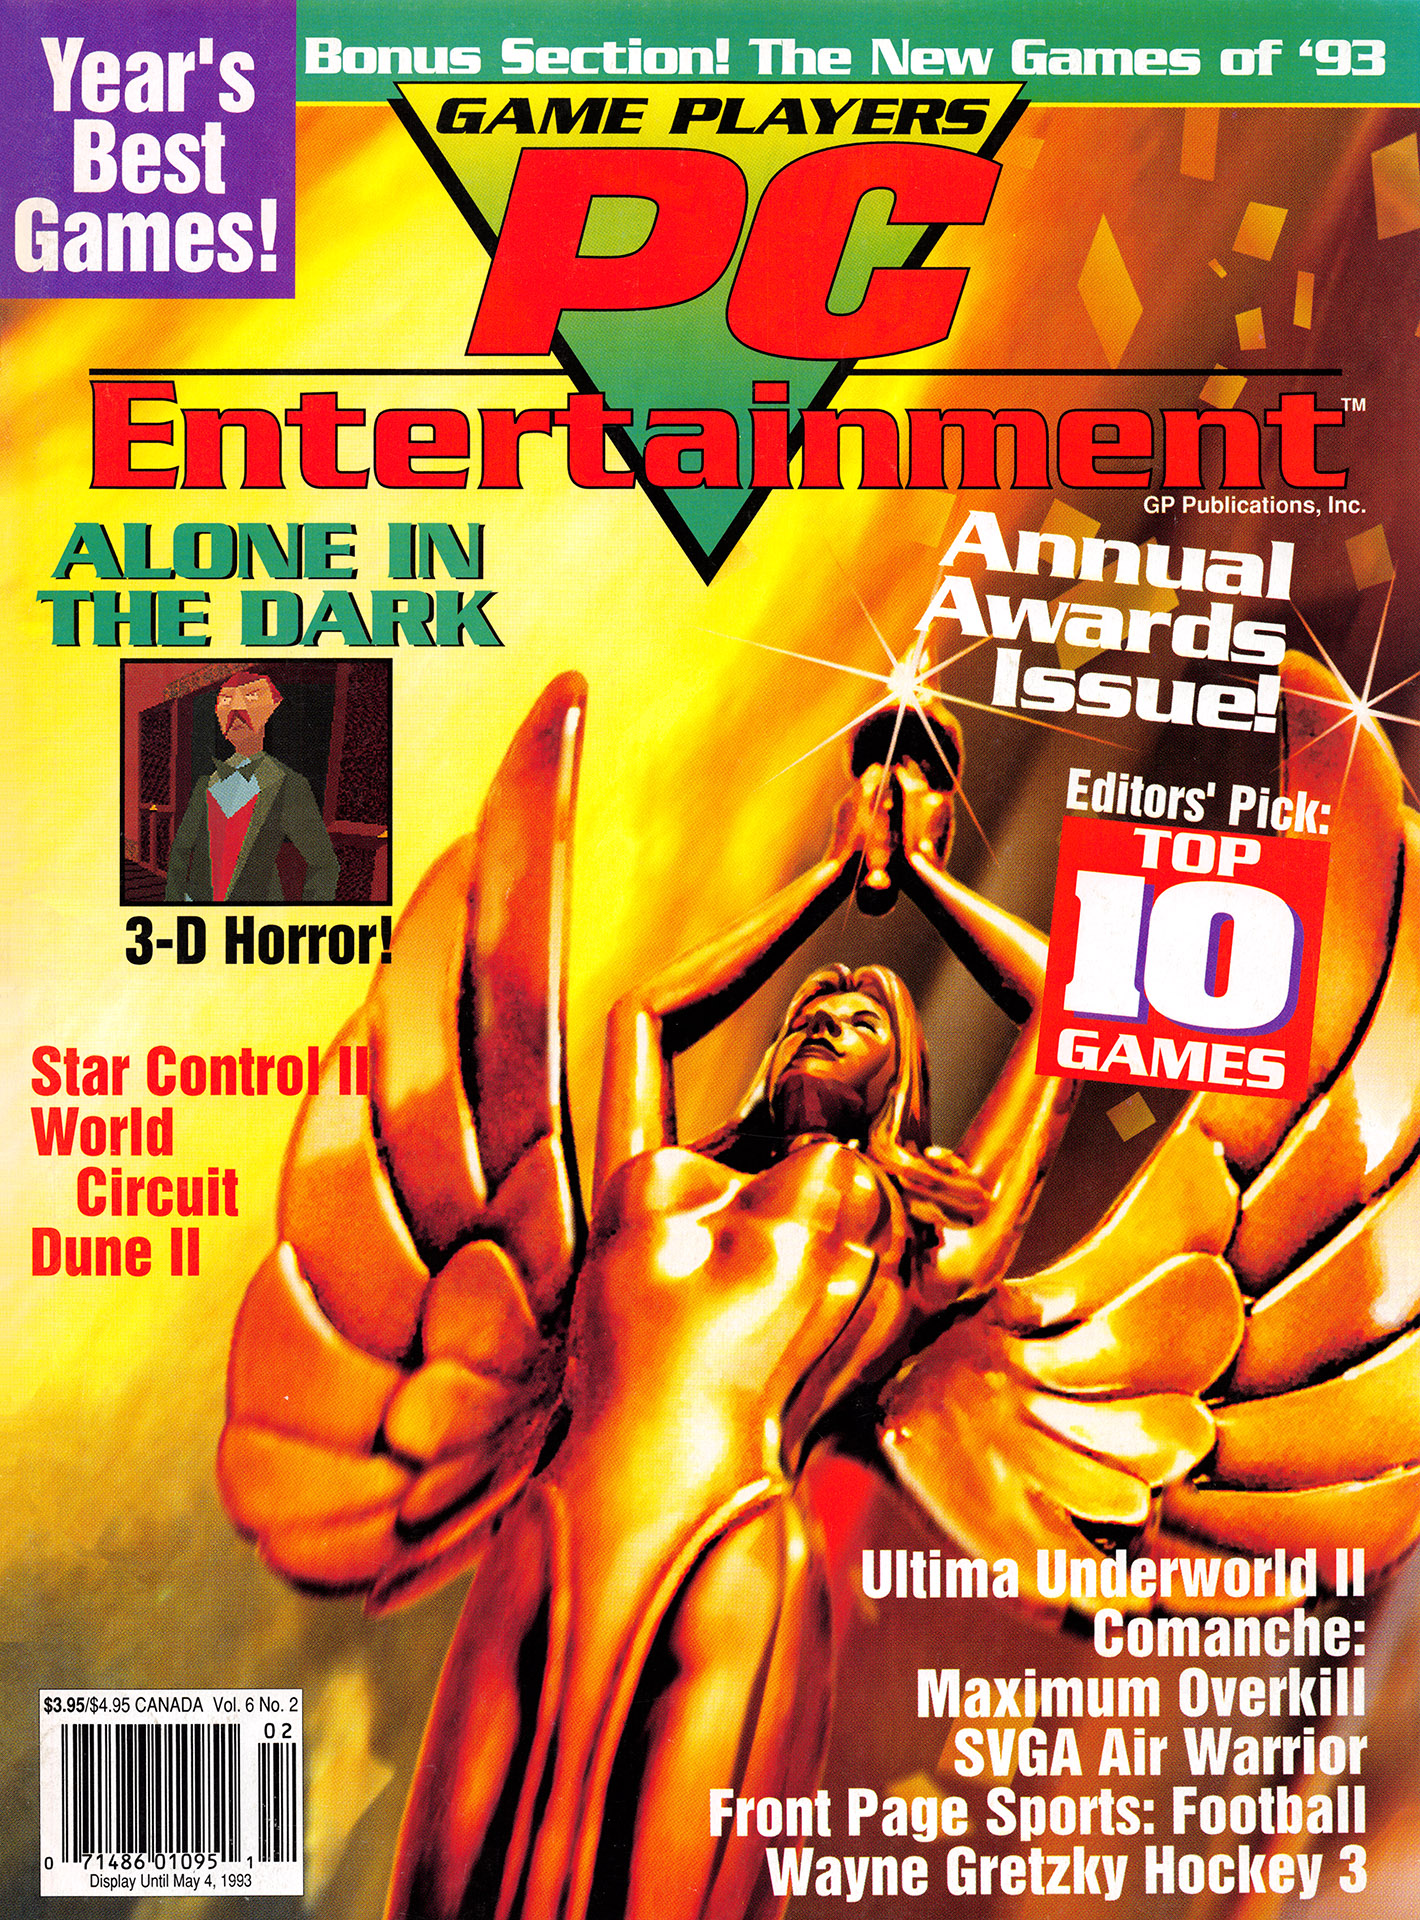 1377616887_GamePlayersPCEntertainmentVol_6No.2(March-April1993).jpg